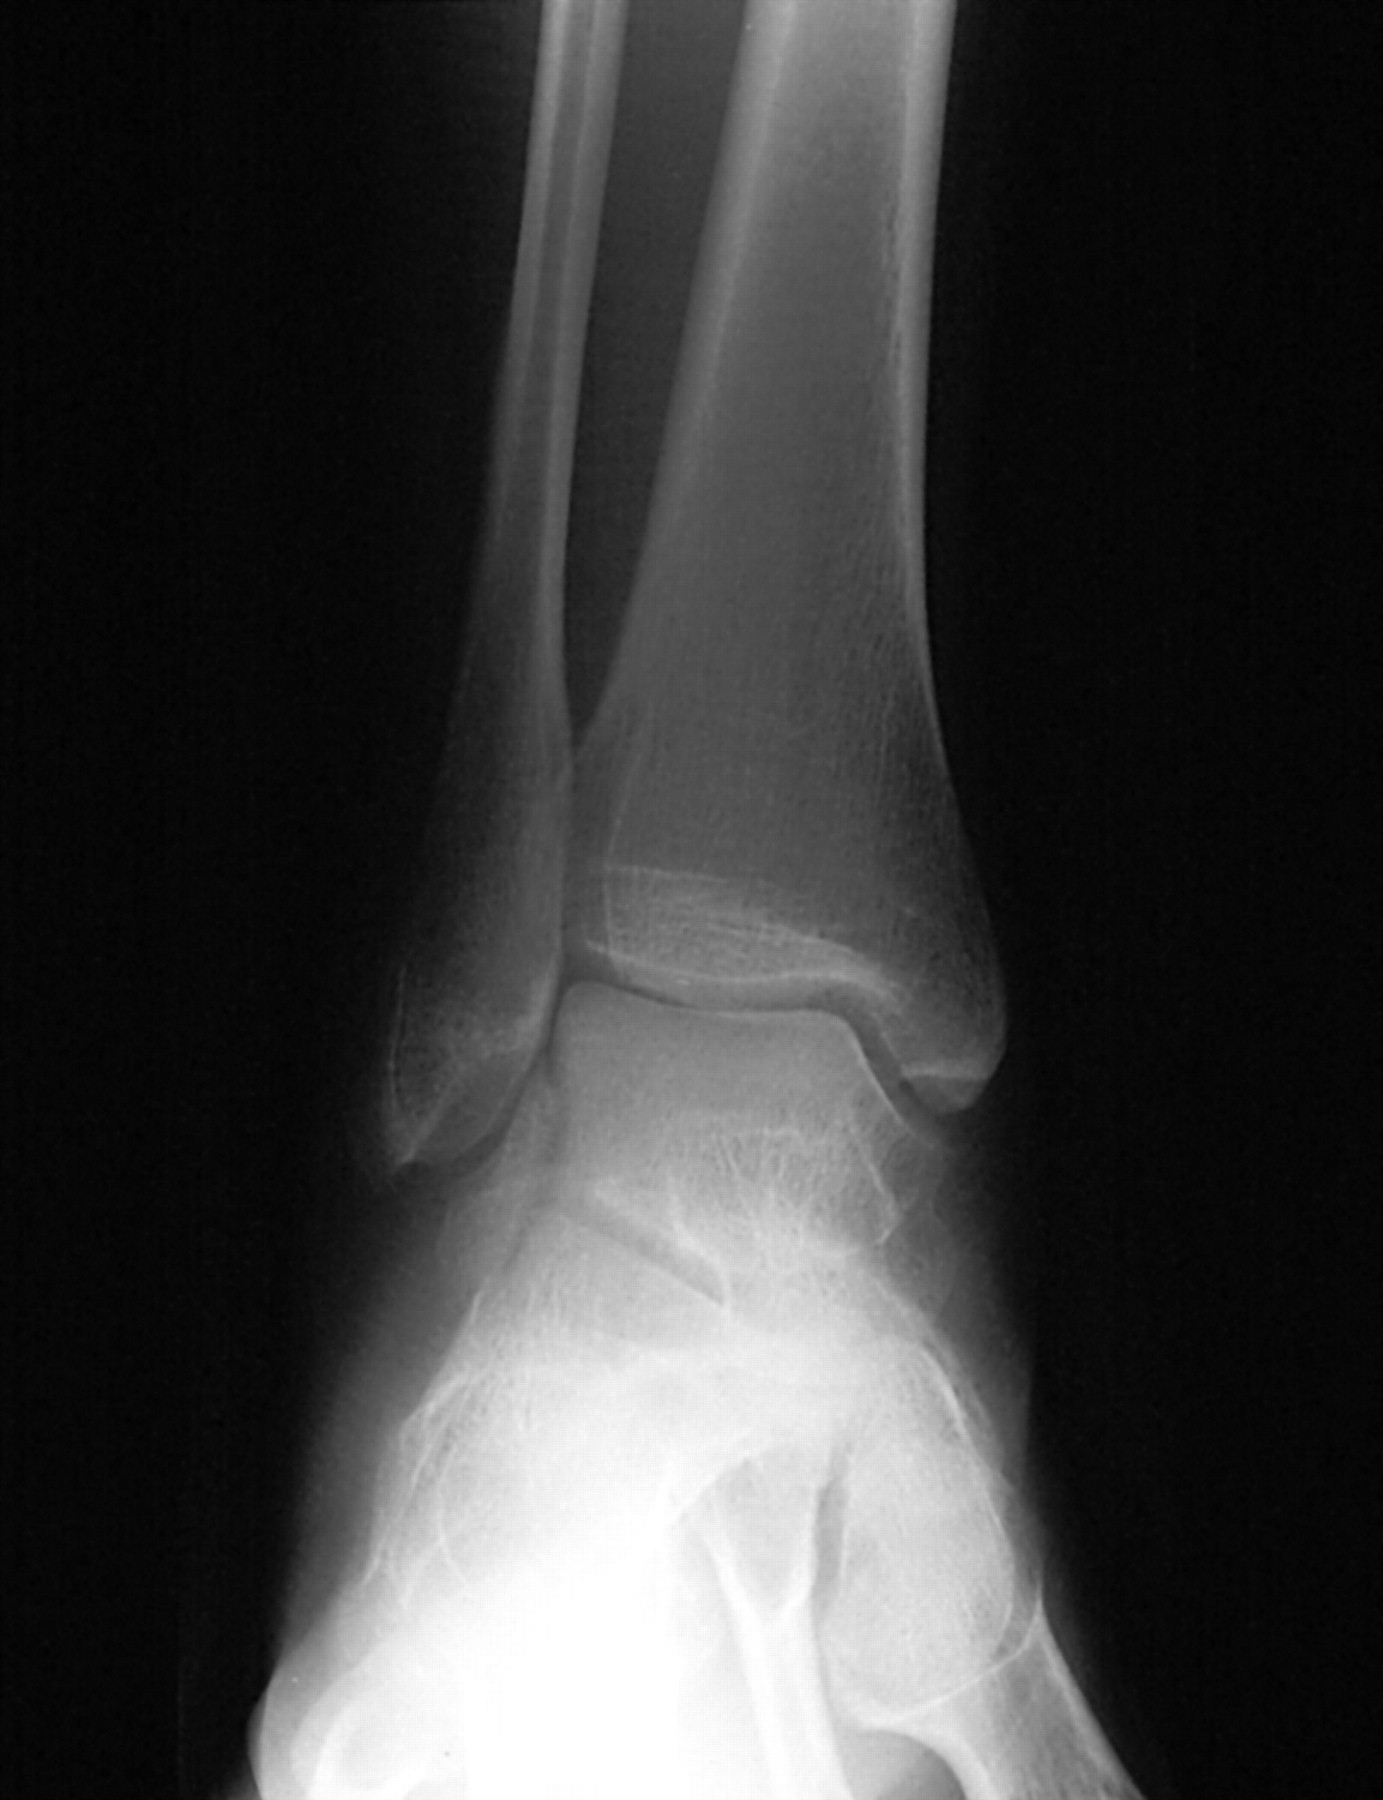 Talus foot. Fracture of the talus of the foot: consequences 51